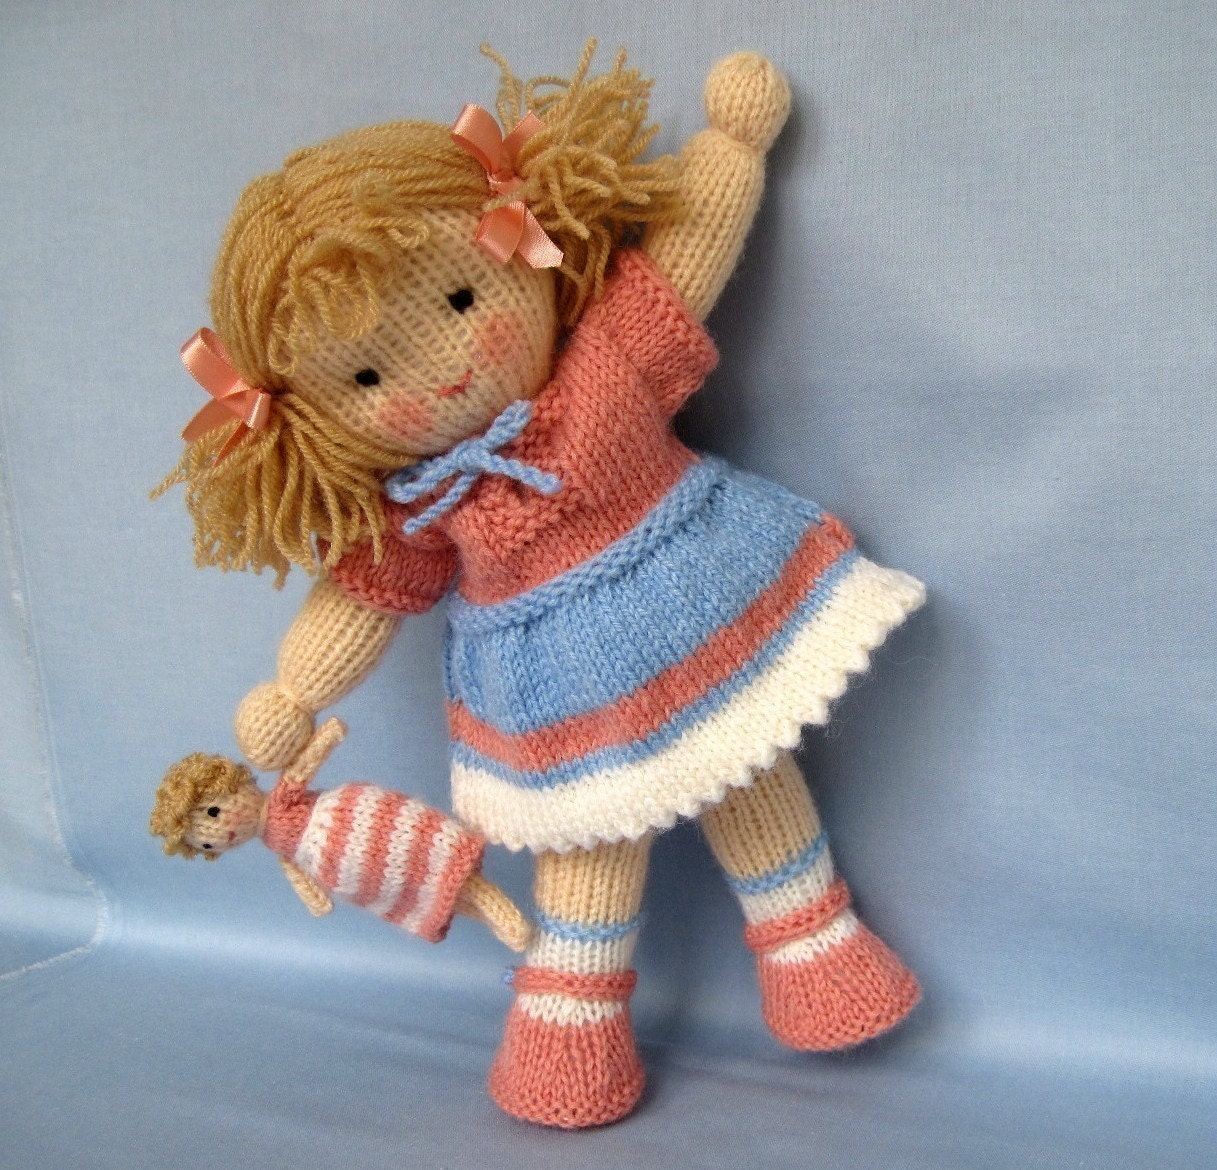 Knitting Patterns For Toy Dolls : Lulu and little doll knitting pattern INSTANT DOWNLOAD